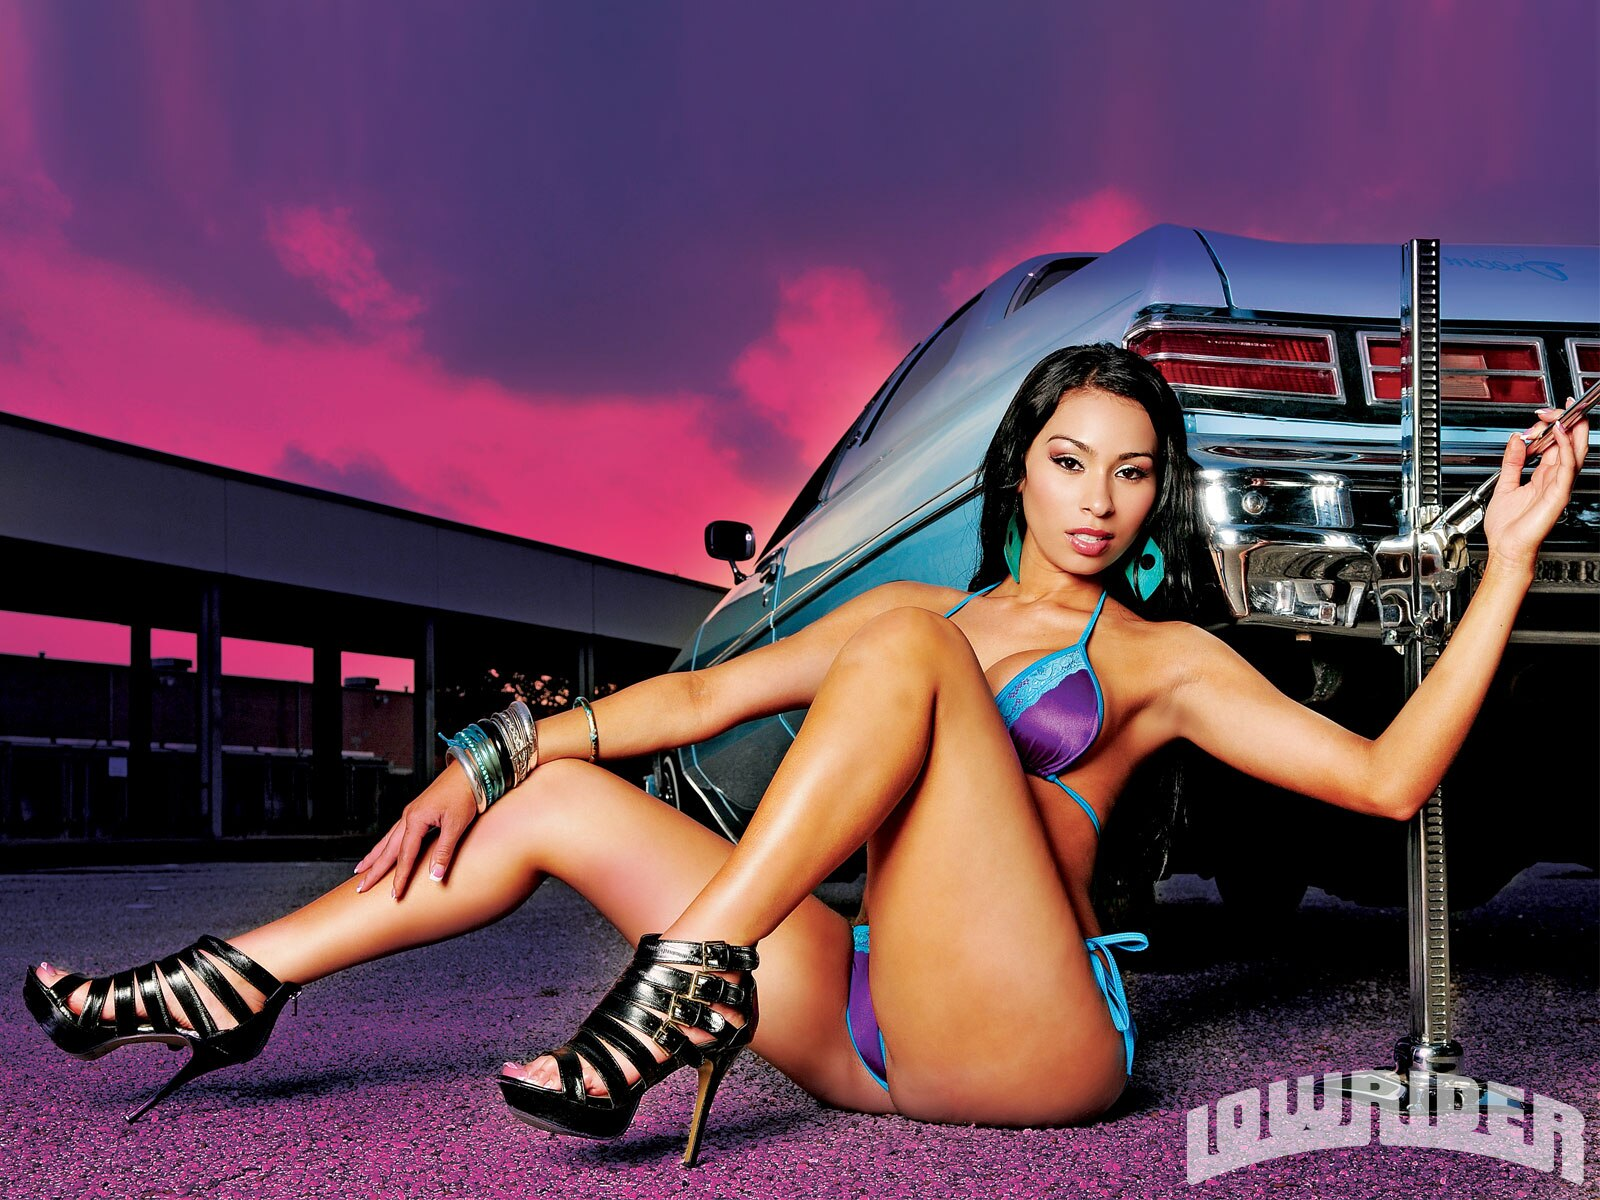 Chola Girl Wallpaper Kristal Lowrider Girls Model Lowrider Girls Magazine